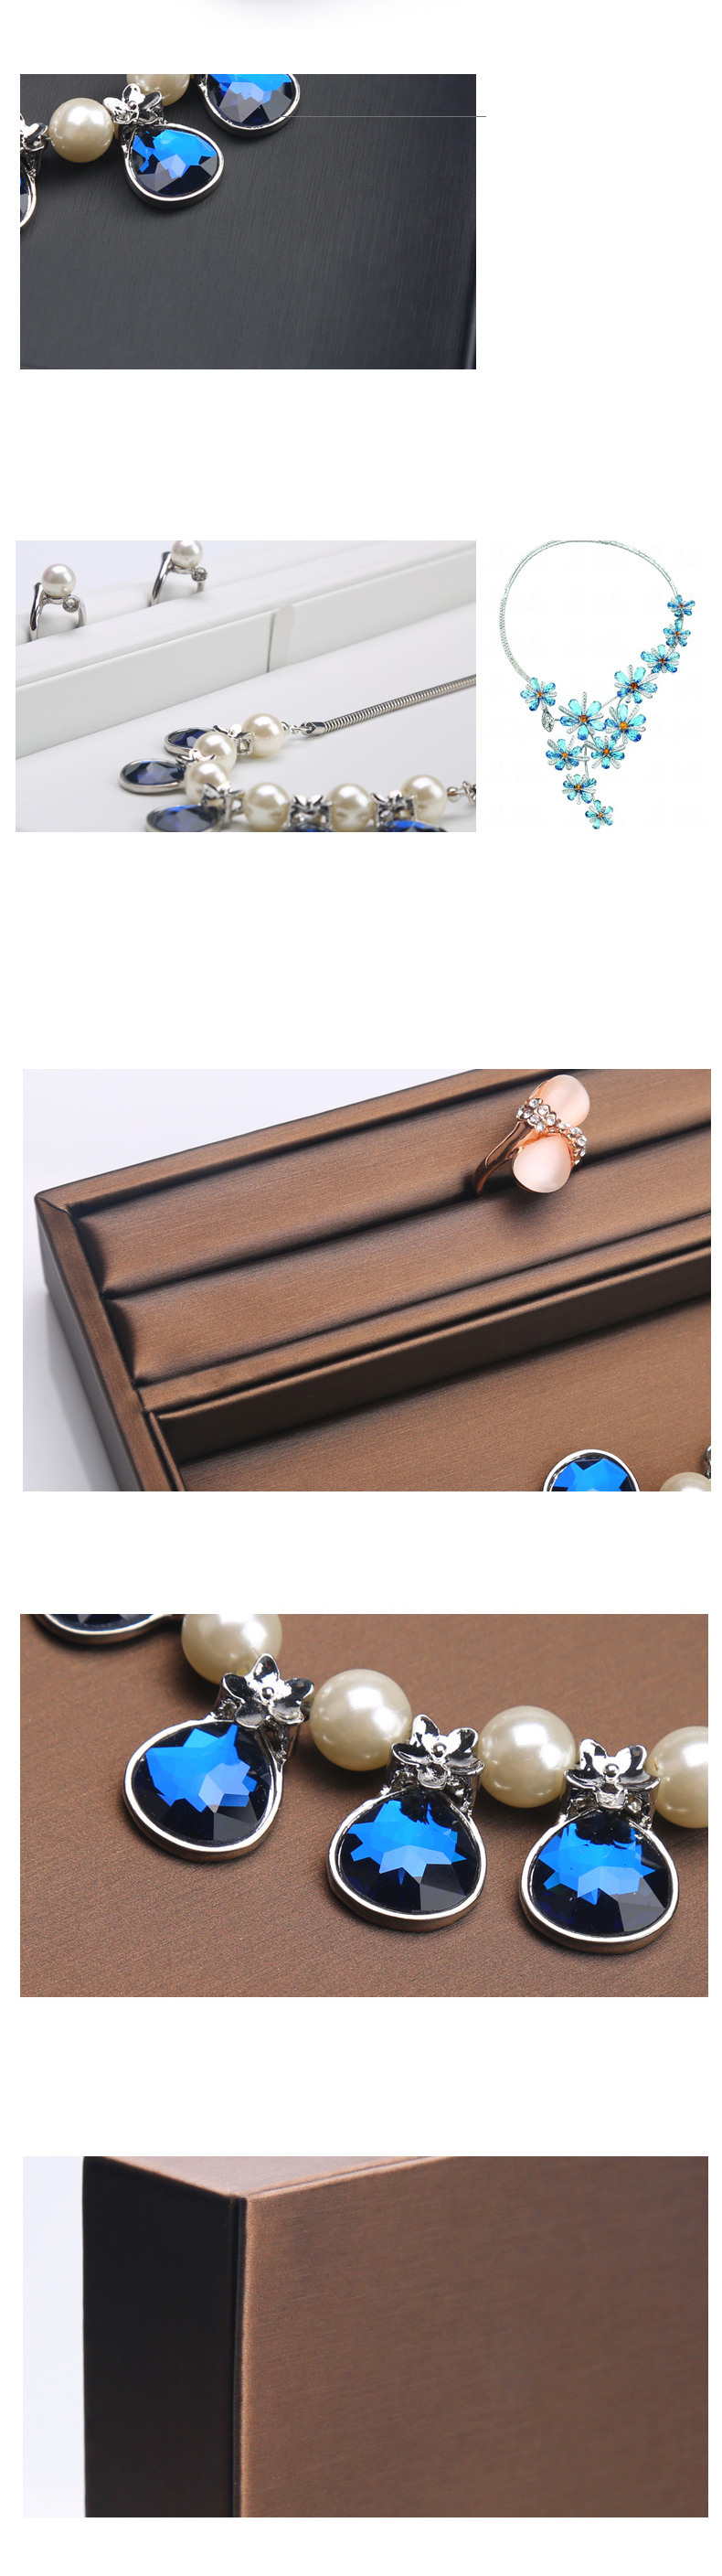 Leather Ornaments Jewelry Display Tray